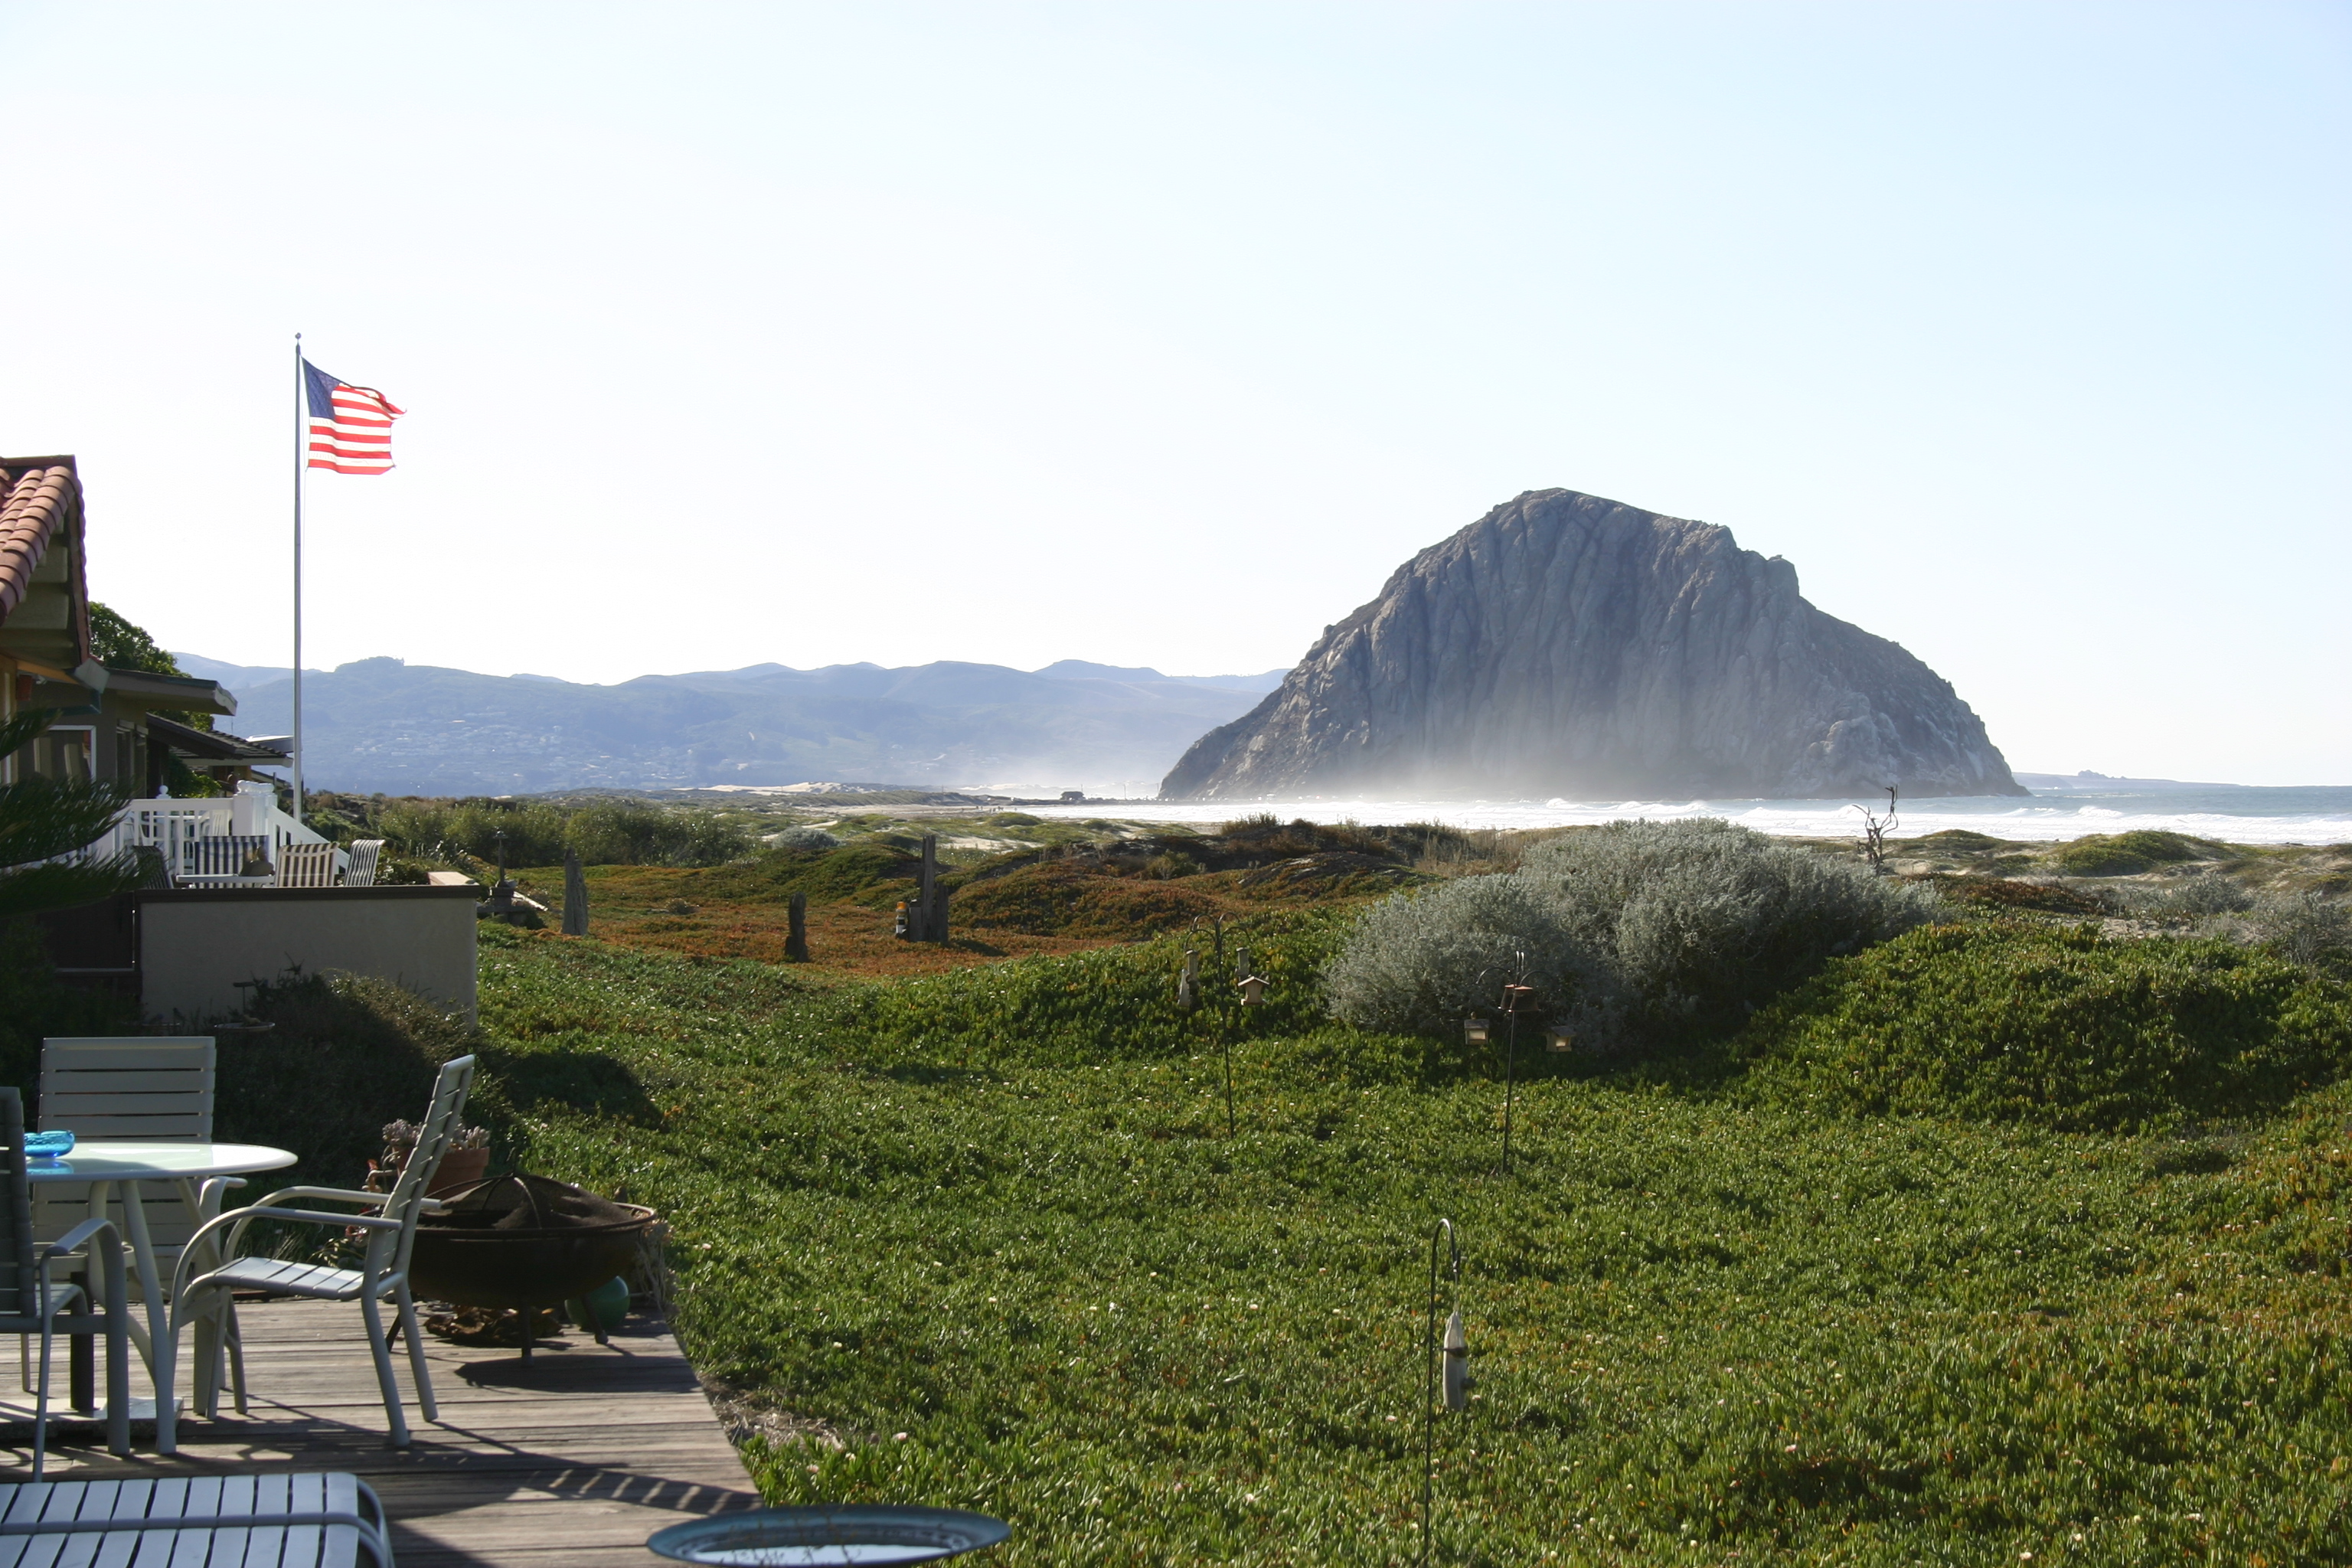 An American flag flies proudly over a patio near Morro Rock.